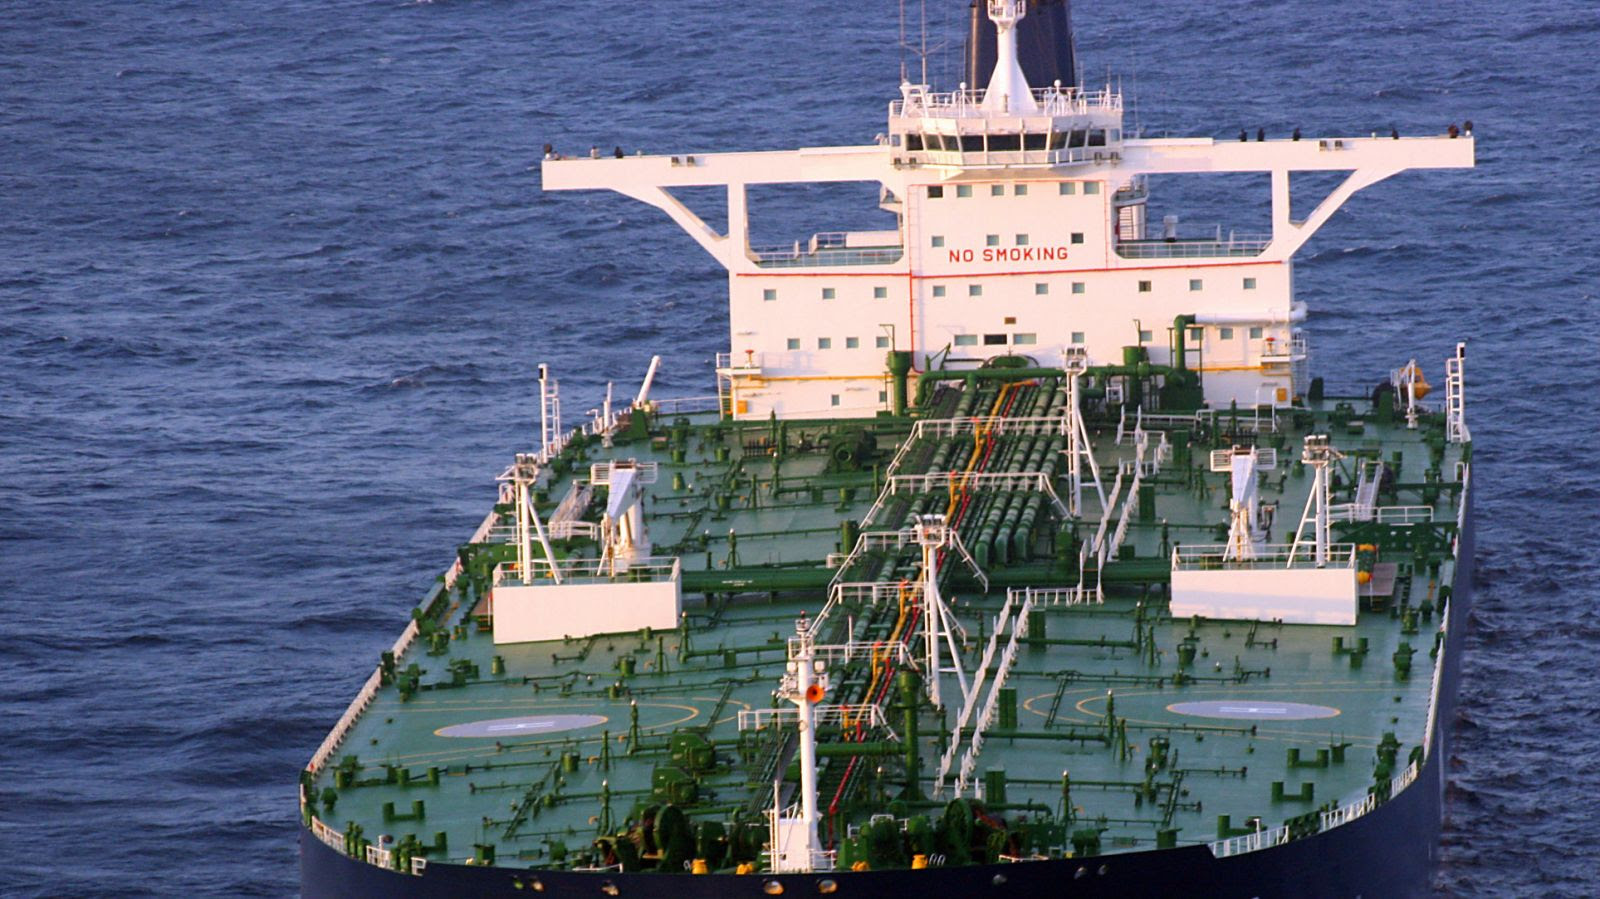 http://maritime-executive.com/media/images/article/Photos/Vessels_Large/Cropped/VLCC-16x9.jpg